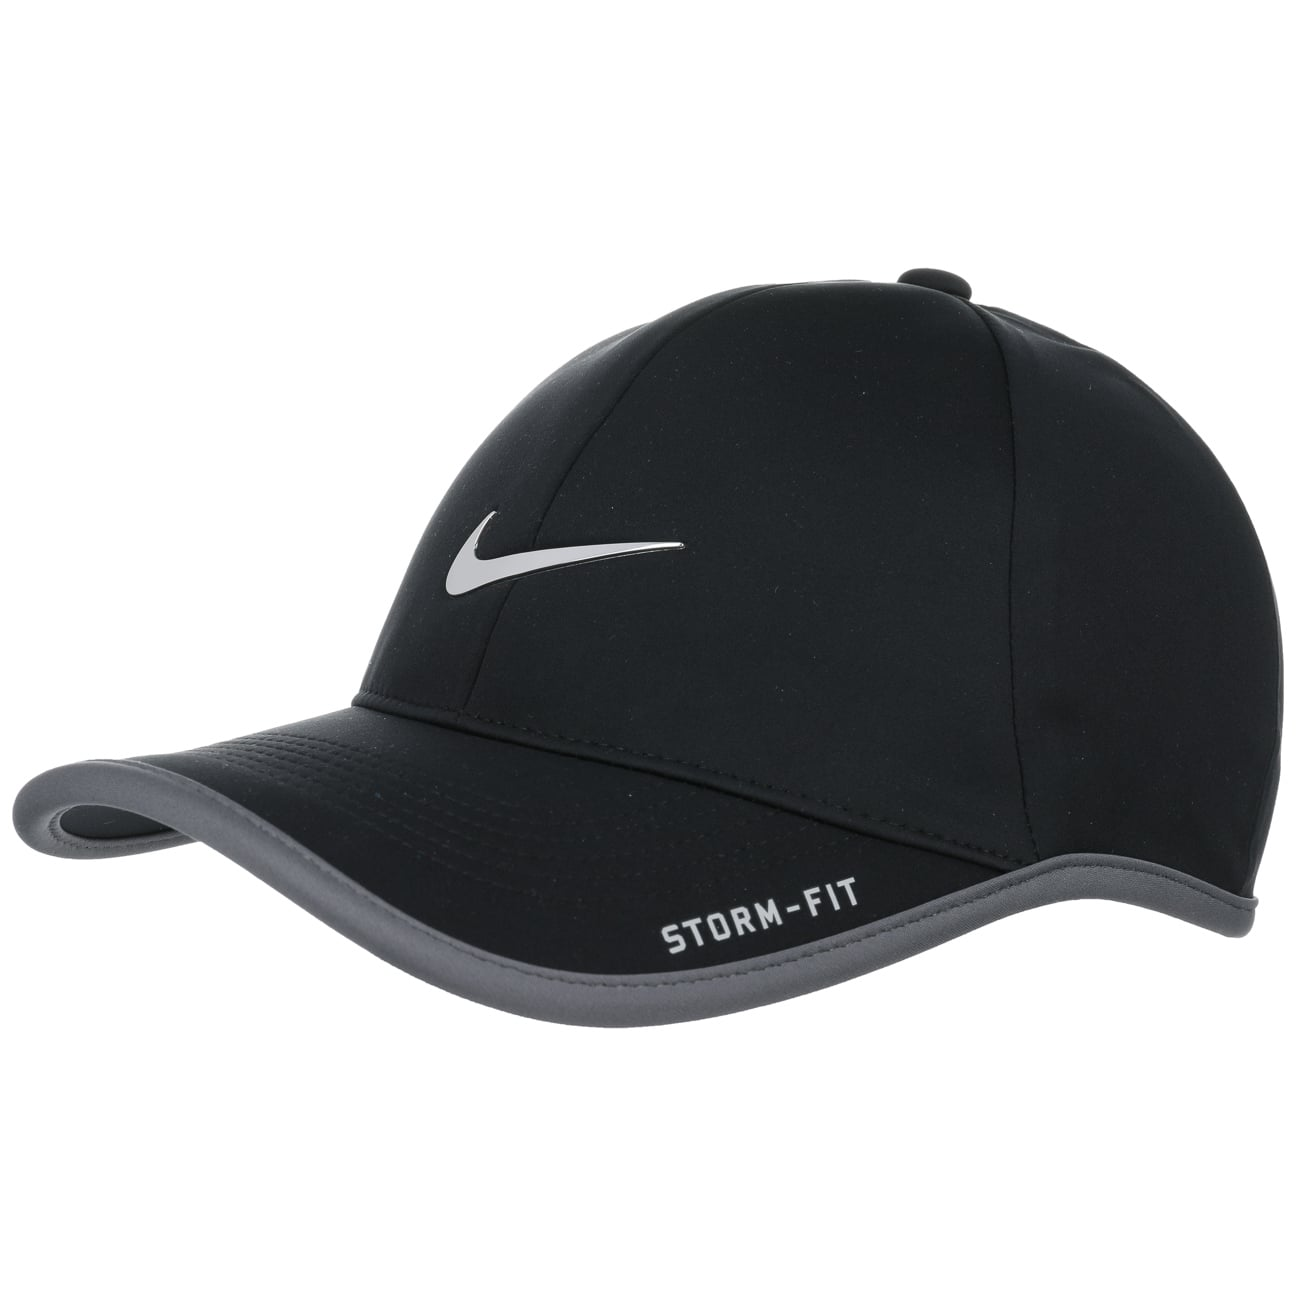 ... Ultralight Storm-FIT Cap by Nike - black 3 c00c9513a1b